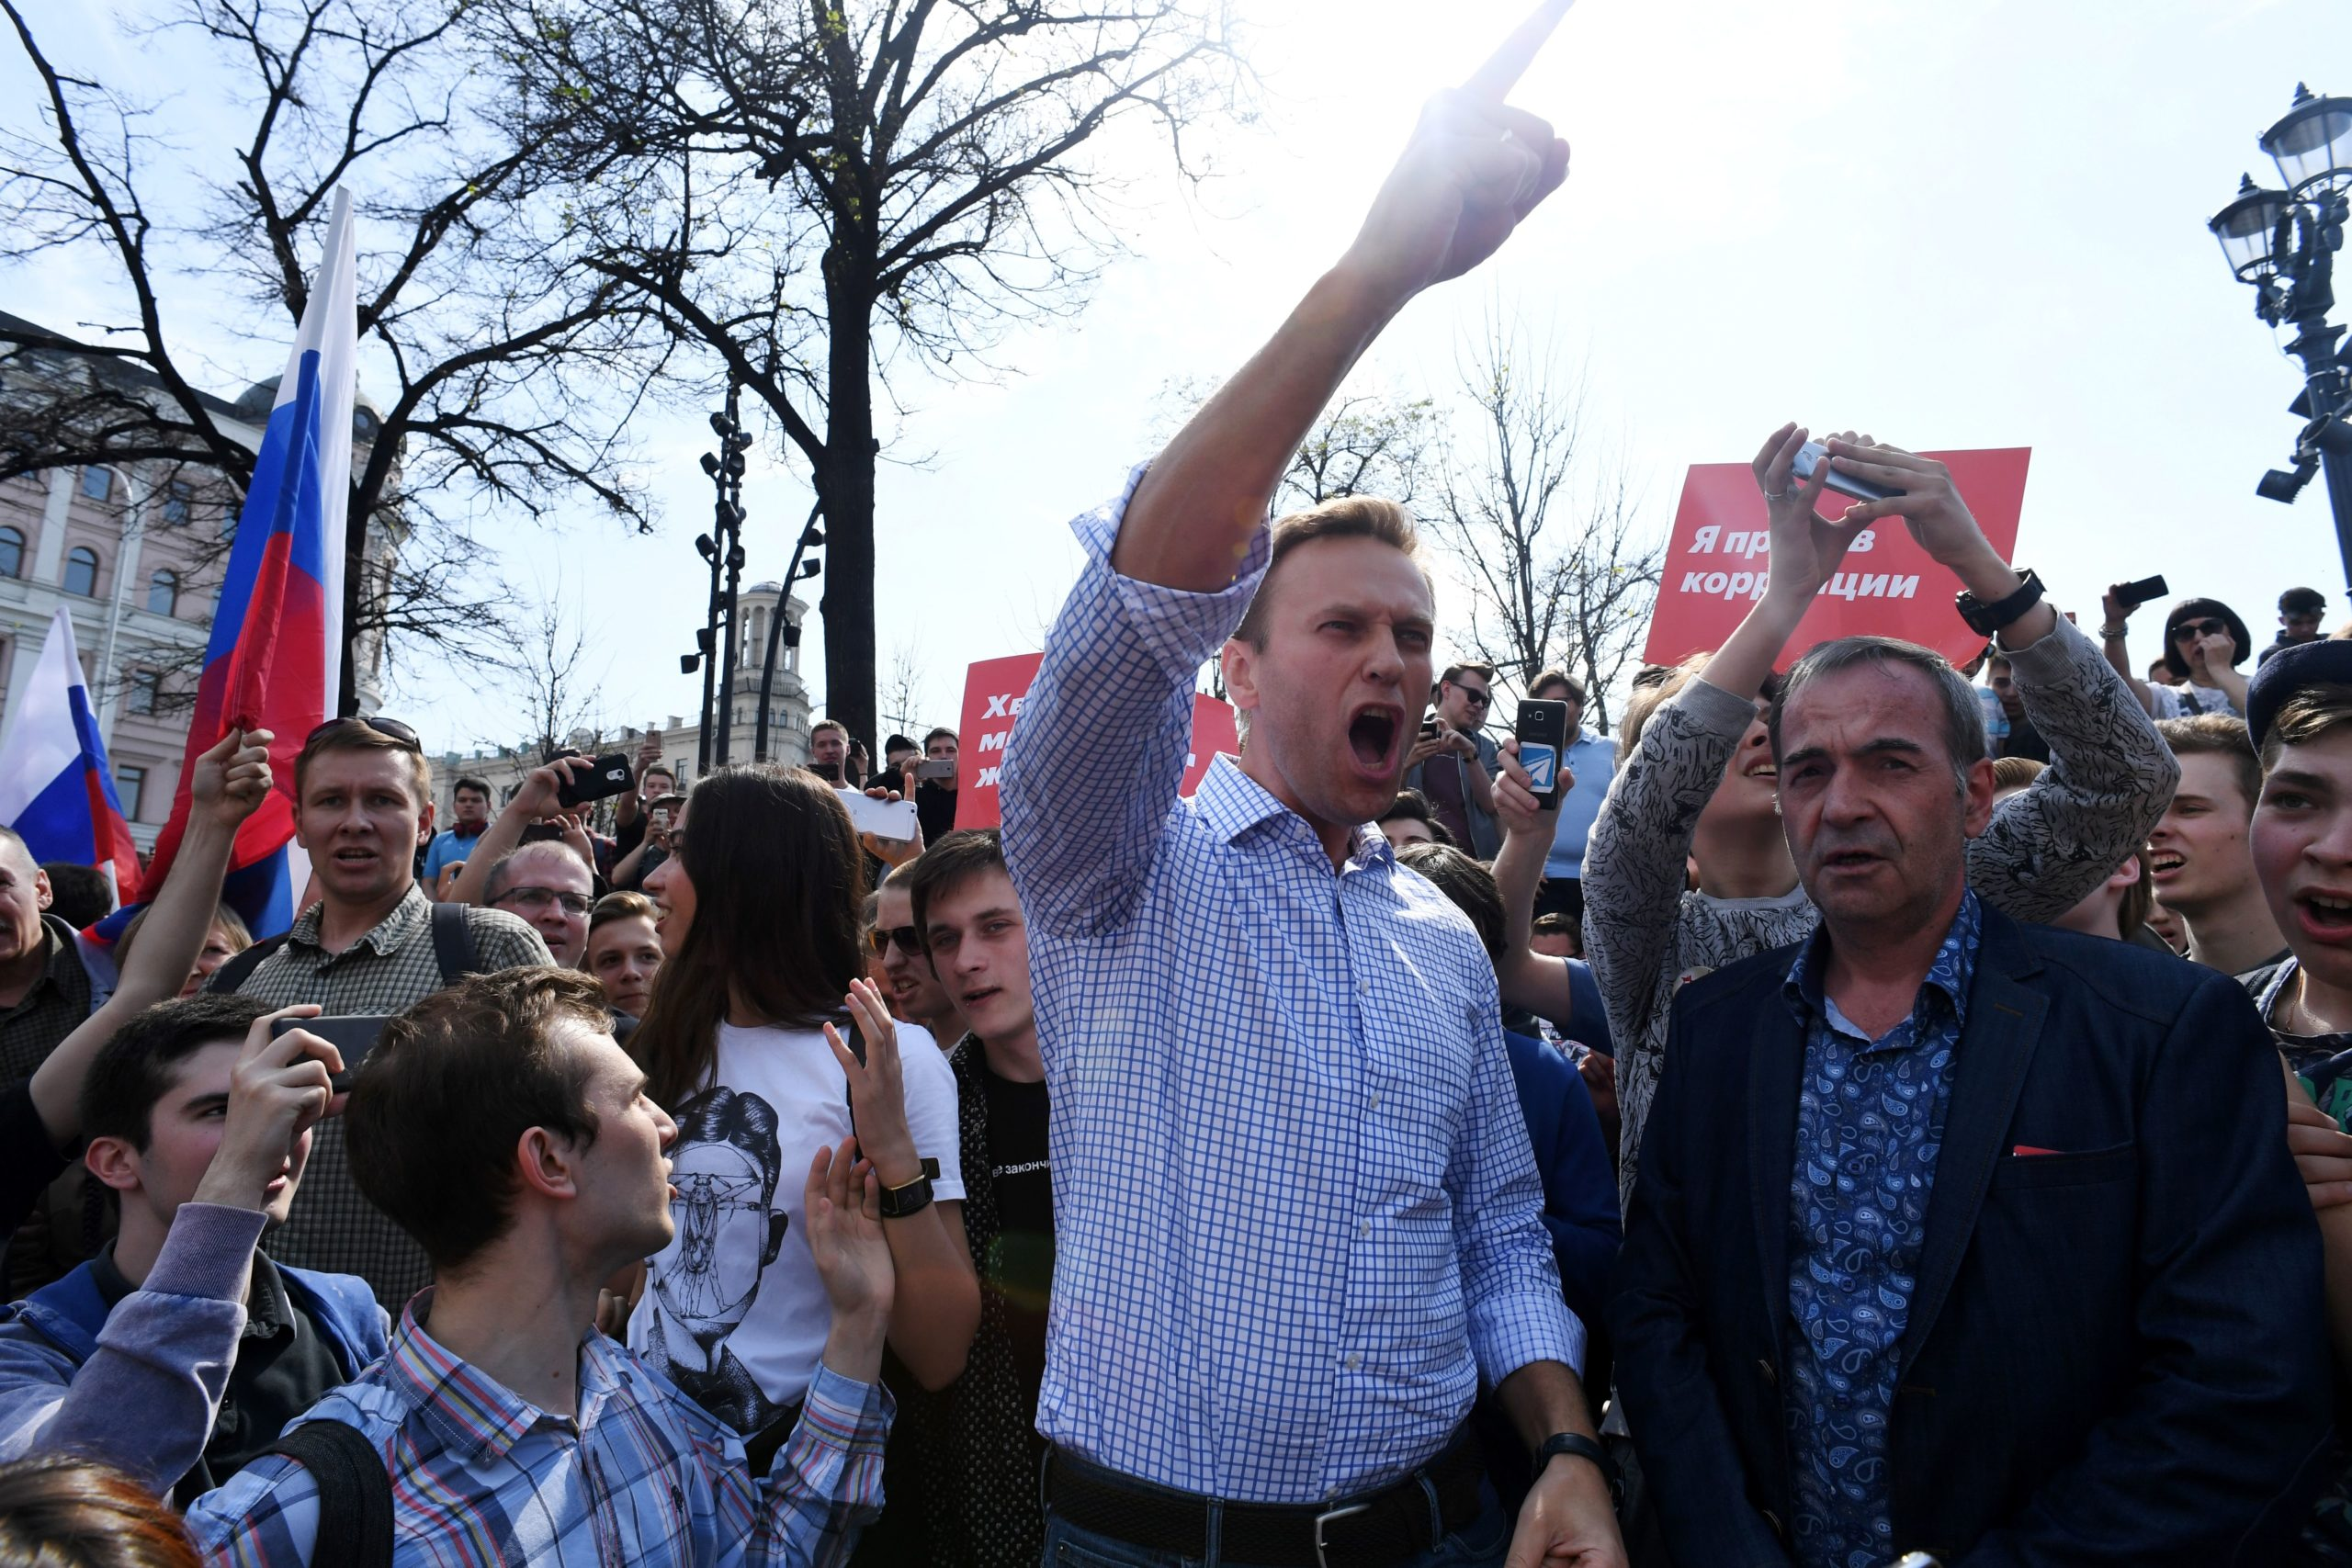 Russian opposition leader Alexei Navalny addresses a crowd during an anti-Putin rally on May 5, 2018 in Moscow, Russia. (Kirill Kudryavtsev/AFP via Getty Images)